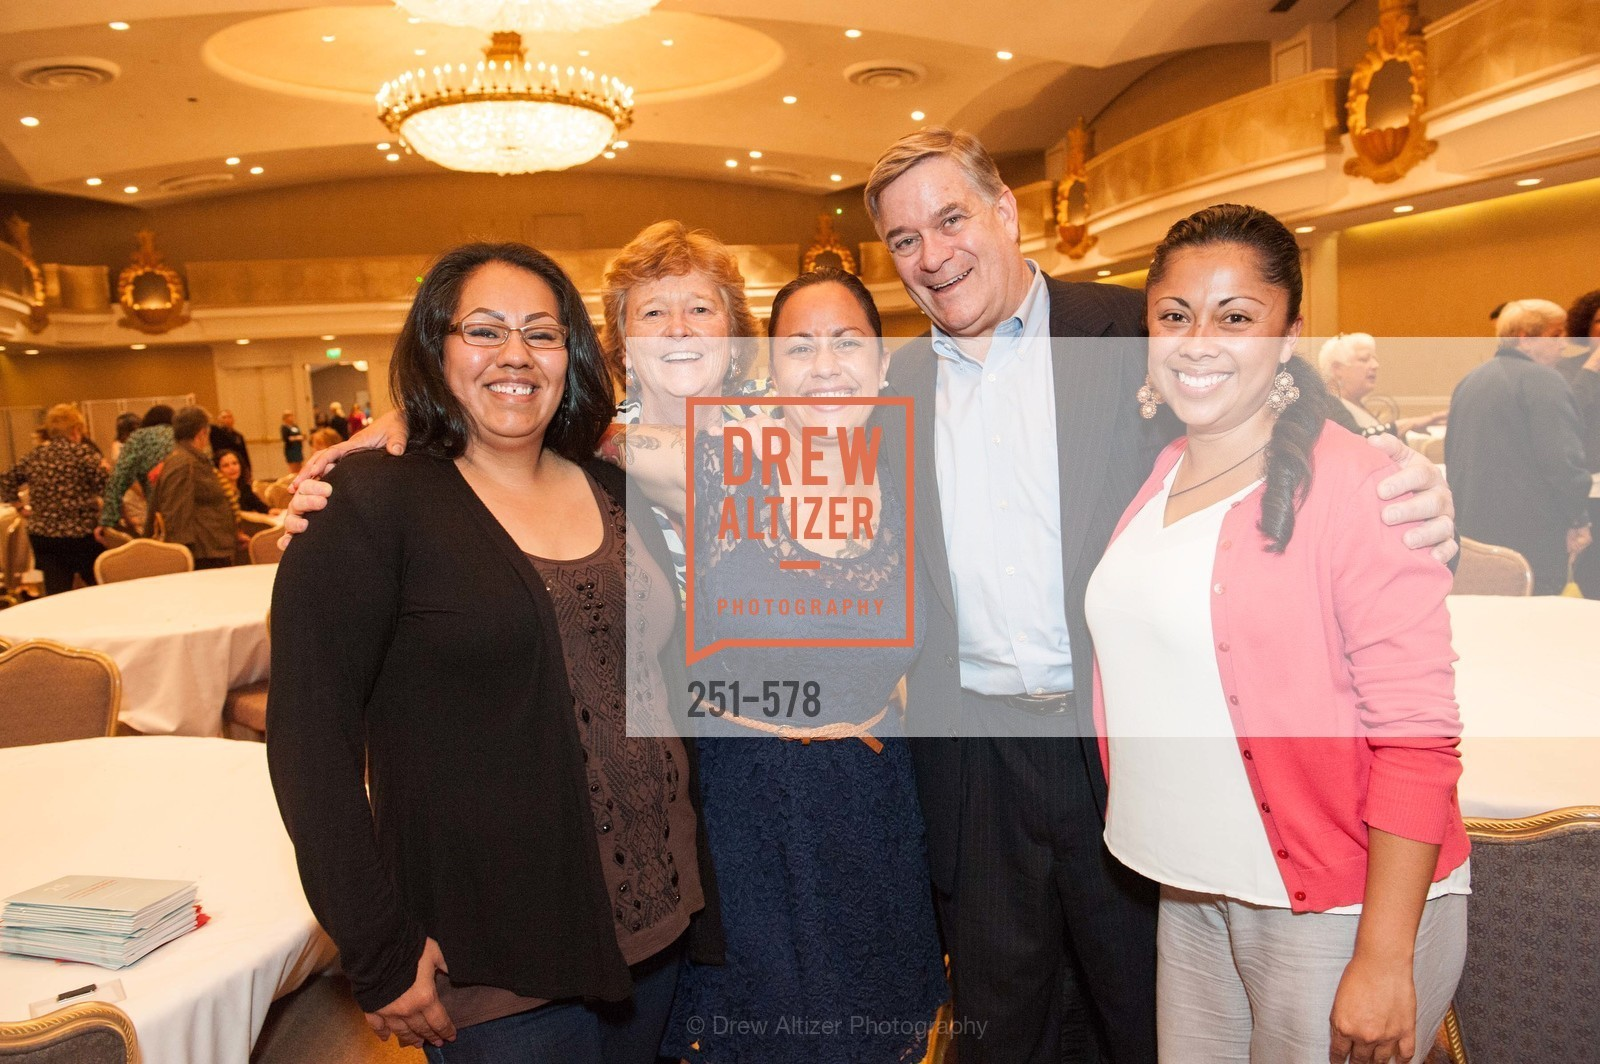 Alma Vasquez, Martha Ryan, Lyn LaHuerta, Dan MacDonald, Karla Ayala, HOMELESS PRENATAL Annual Luncheon 2014, US, October 1st, 2014,Drew Altizer, Drew Altizer Photography, full-service agency, private events, San Francisco photographer, photographer california